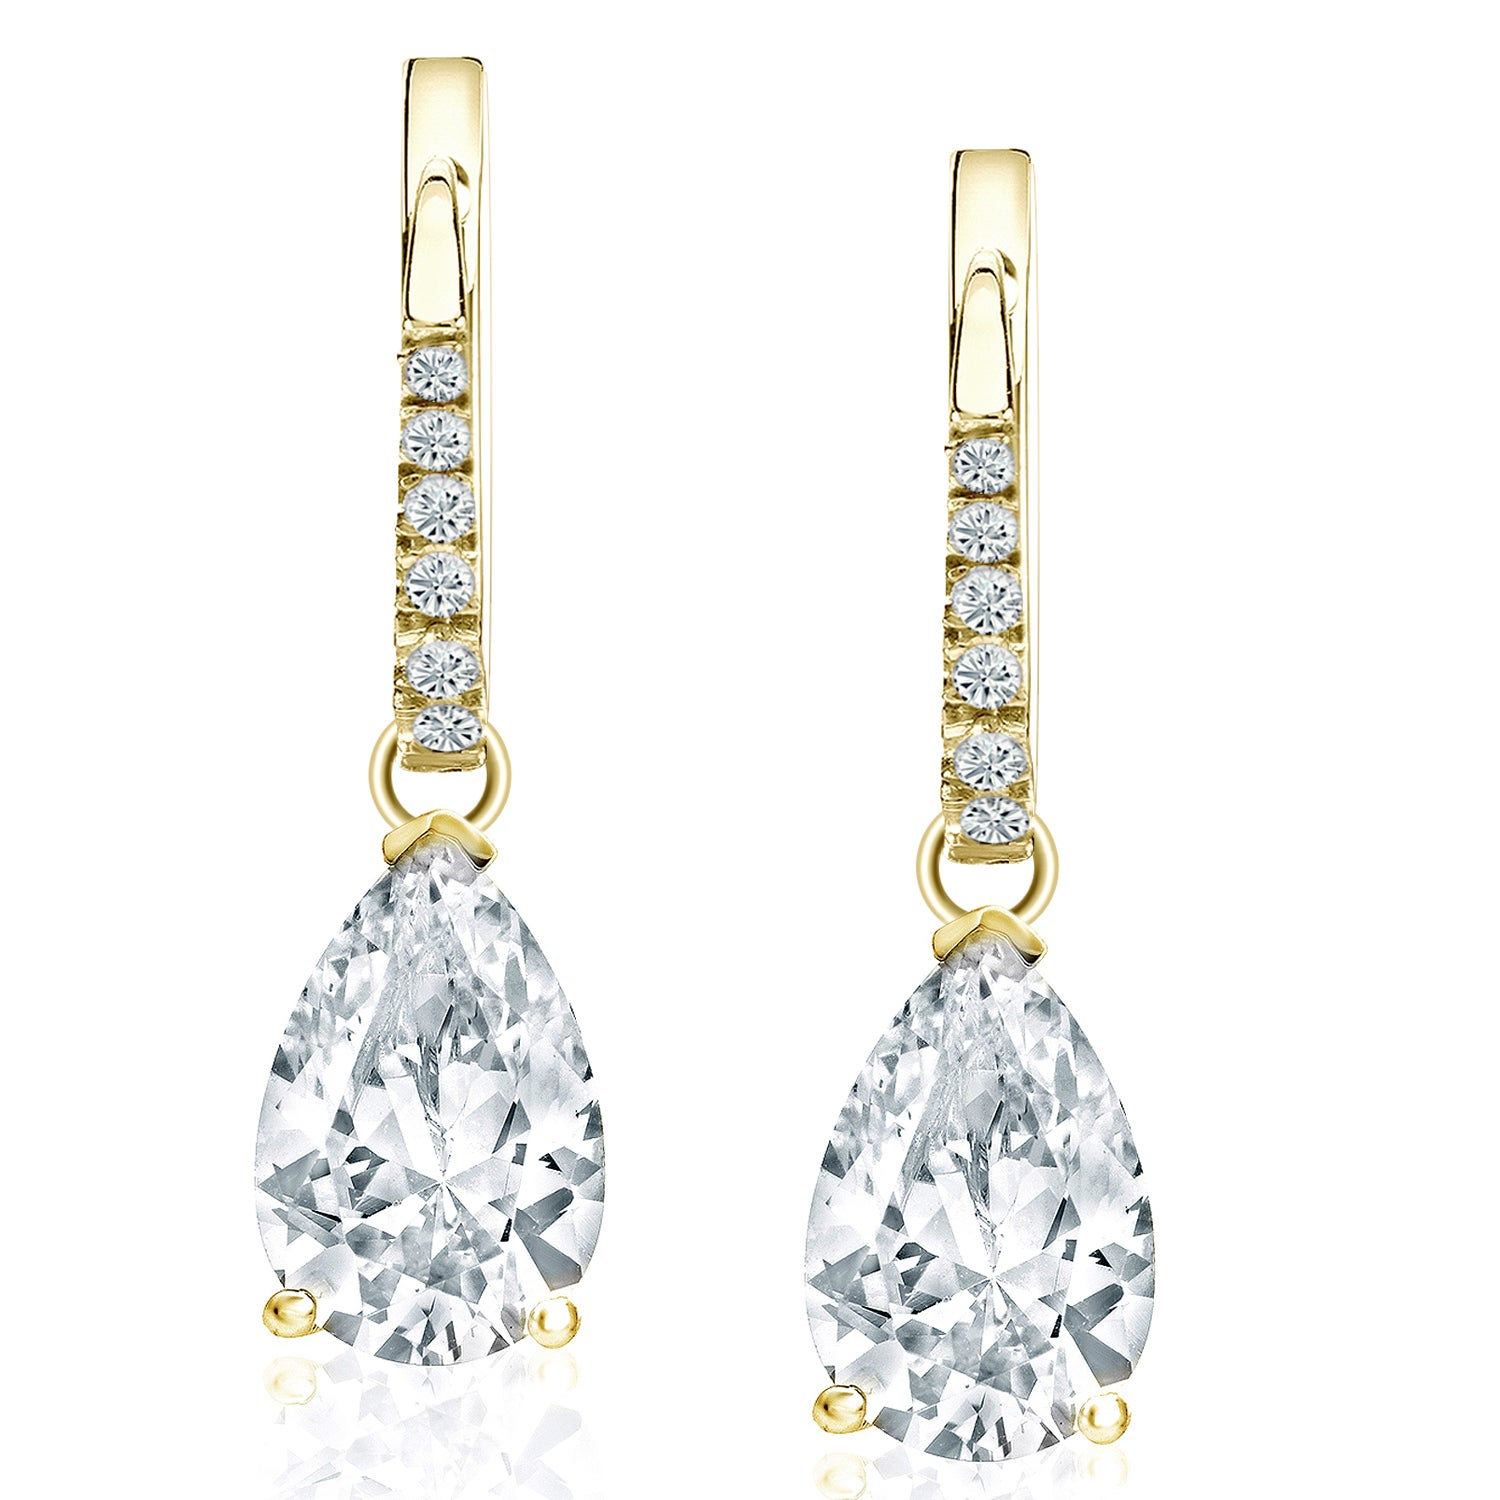 pear itm cluster drop earrings leodaniels and with number shaped center gold white model